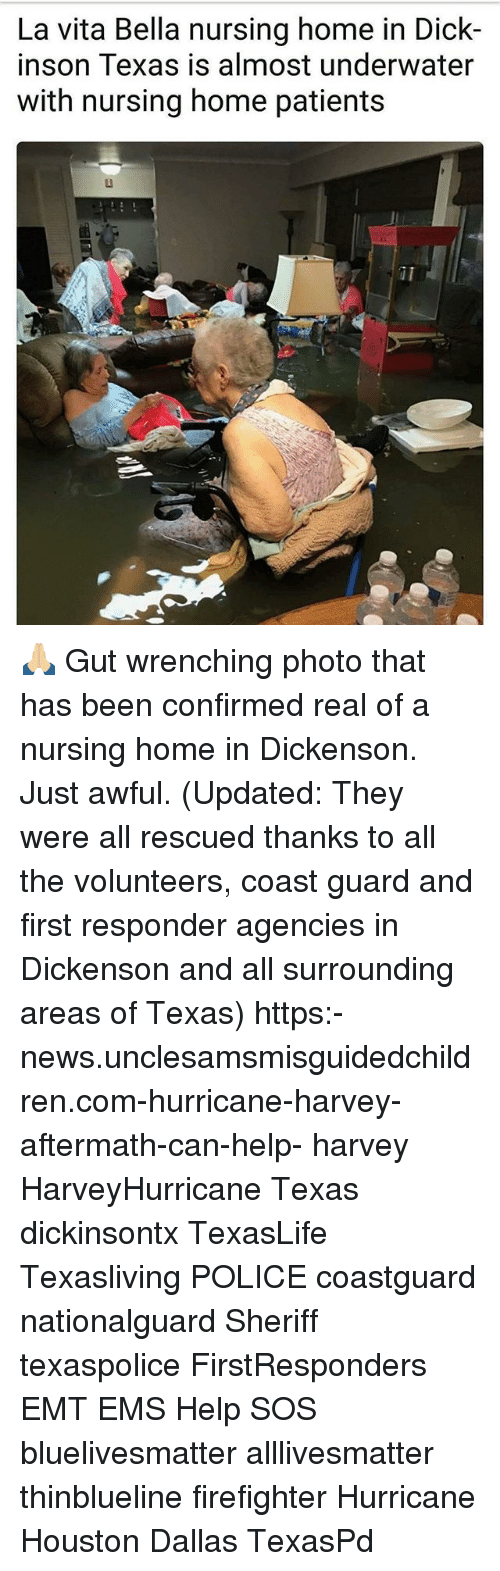 Emt: La vita Bella nursing home in Dick-  inson Texas is almost underwater  with nursing home patients 🙏🏼 Gut wrenching photo that has been confirmed real of a nursing home in Dickenson. Just awful. (Updated: They were all rescued thanks to all the volunteers, coast guard and first responder agencies in Dickenson and all surrounding areas of Texas) https:-news.unclesamsmisguidedchildren.com-hurricane-harvey-aftermath-can-help- harvey HarveyHurricane Texas dickinsontx TexasLife Texasliving POLICE coastguard nationalguard Sheriff texaspolice FirstResponders EMT EMS Help SOS bluelivesmatter alllivesmatter thinblueline firefighter Hurricane Houston Dallas TexasPd